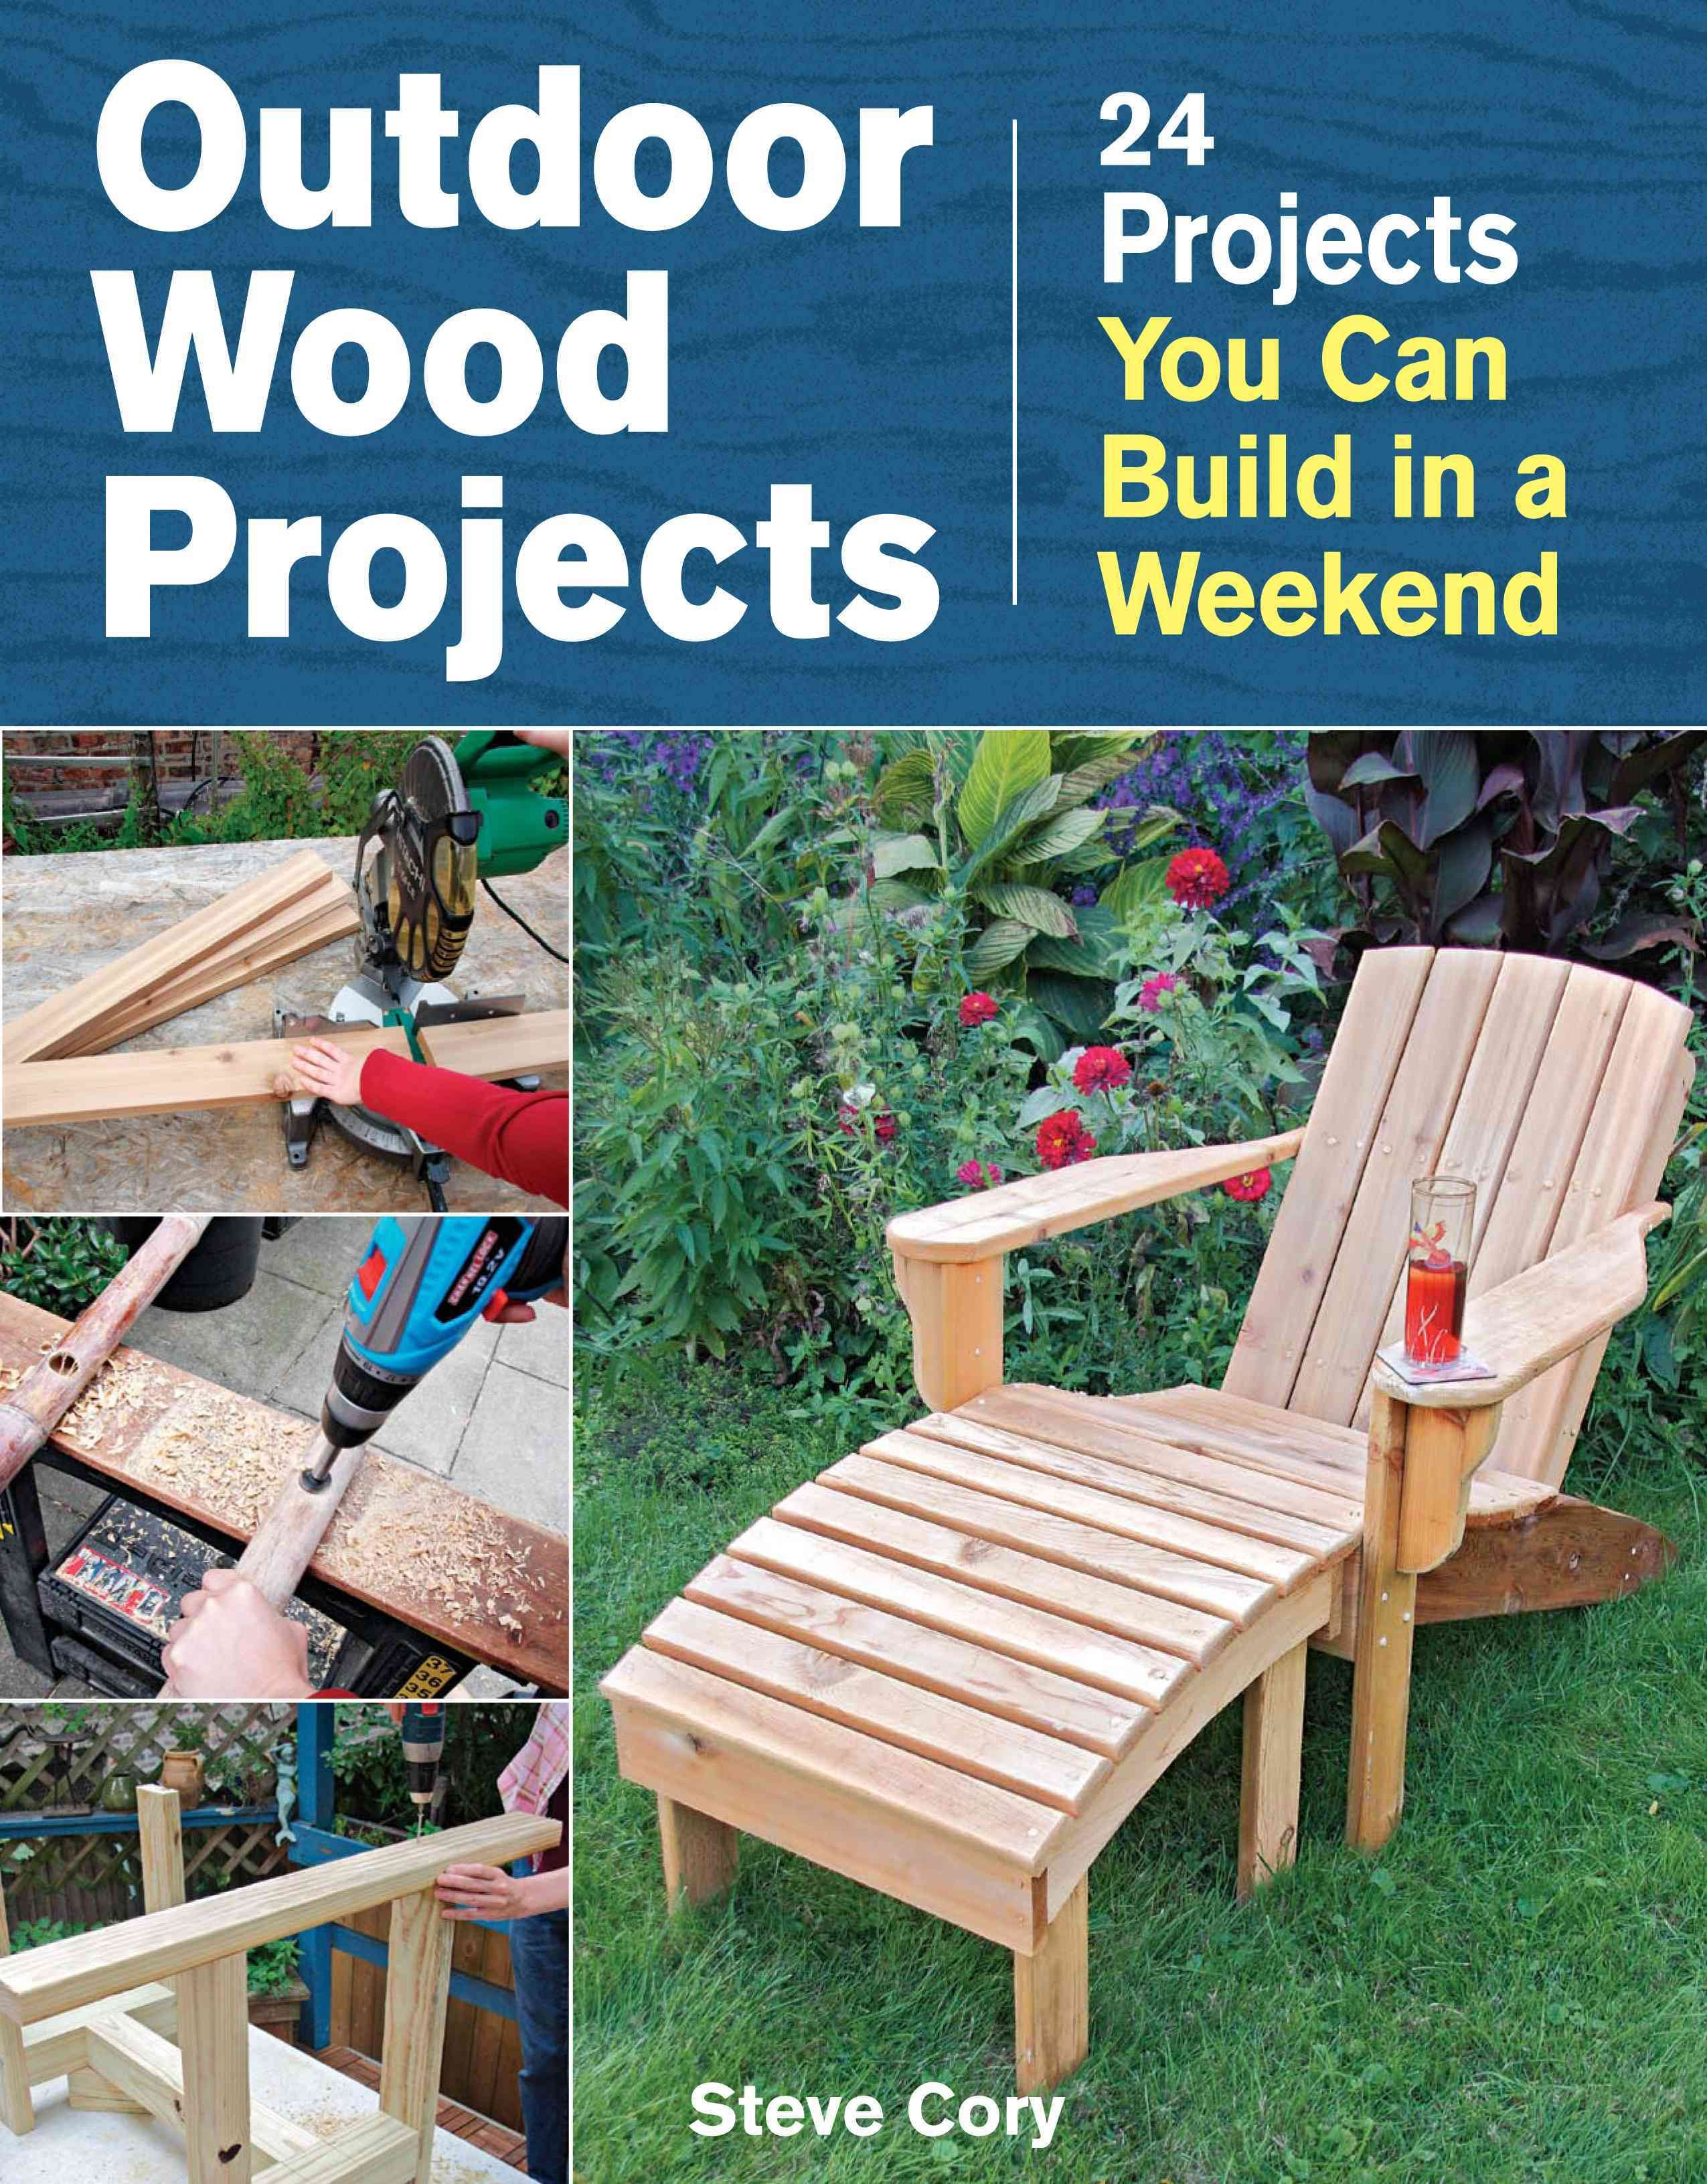 Outdoor Wood Projects: 24 Projects You Can Build in a Weekend What ...